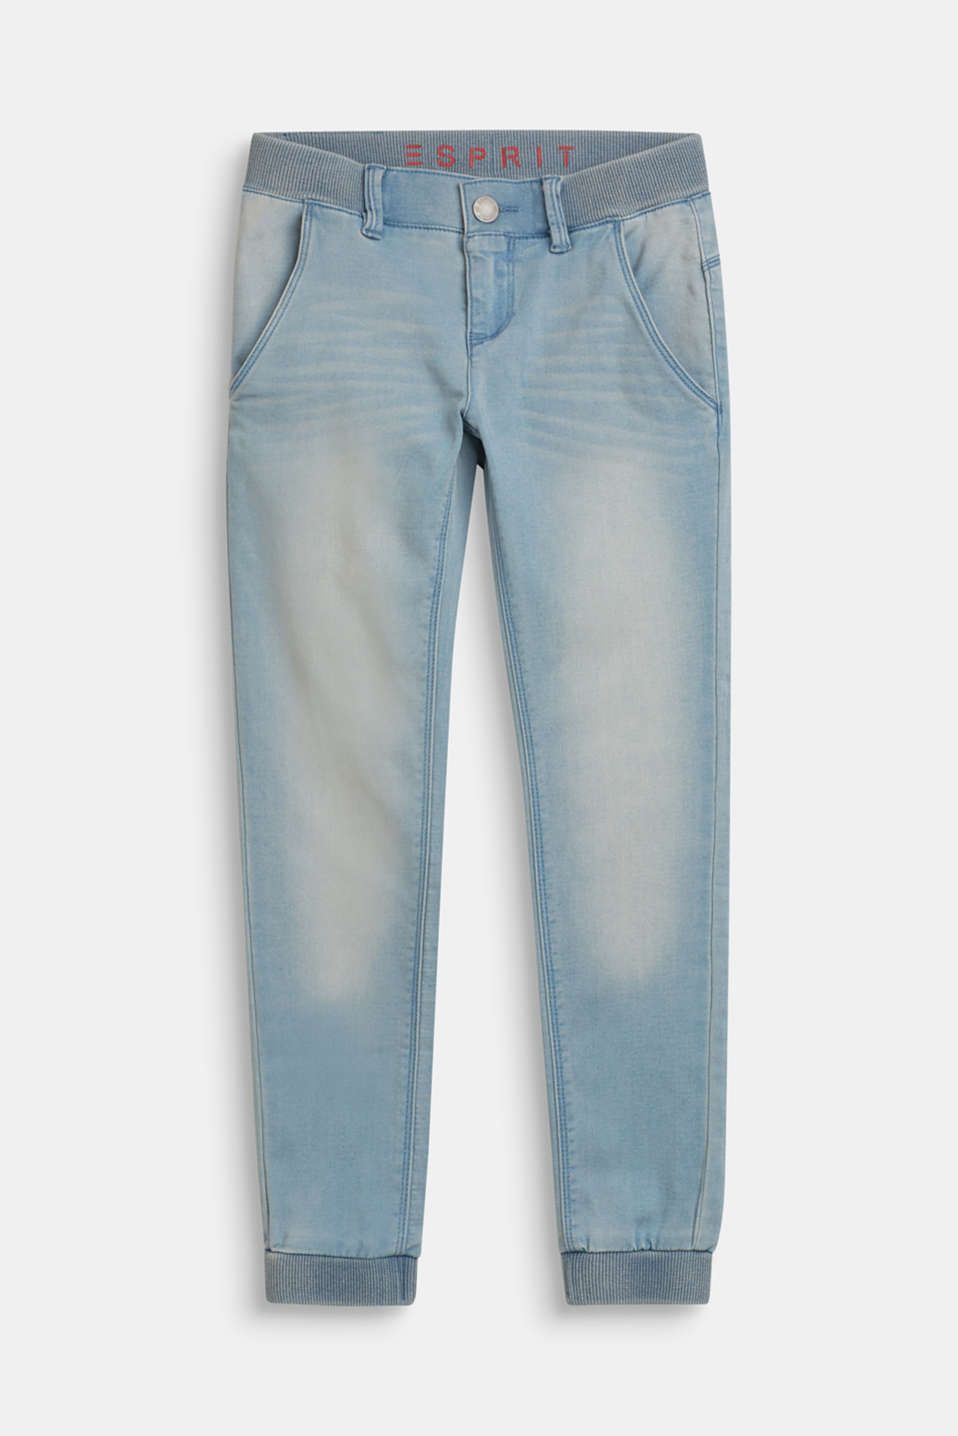 Esprit - Jean stretch de qualité molletonnée confortable